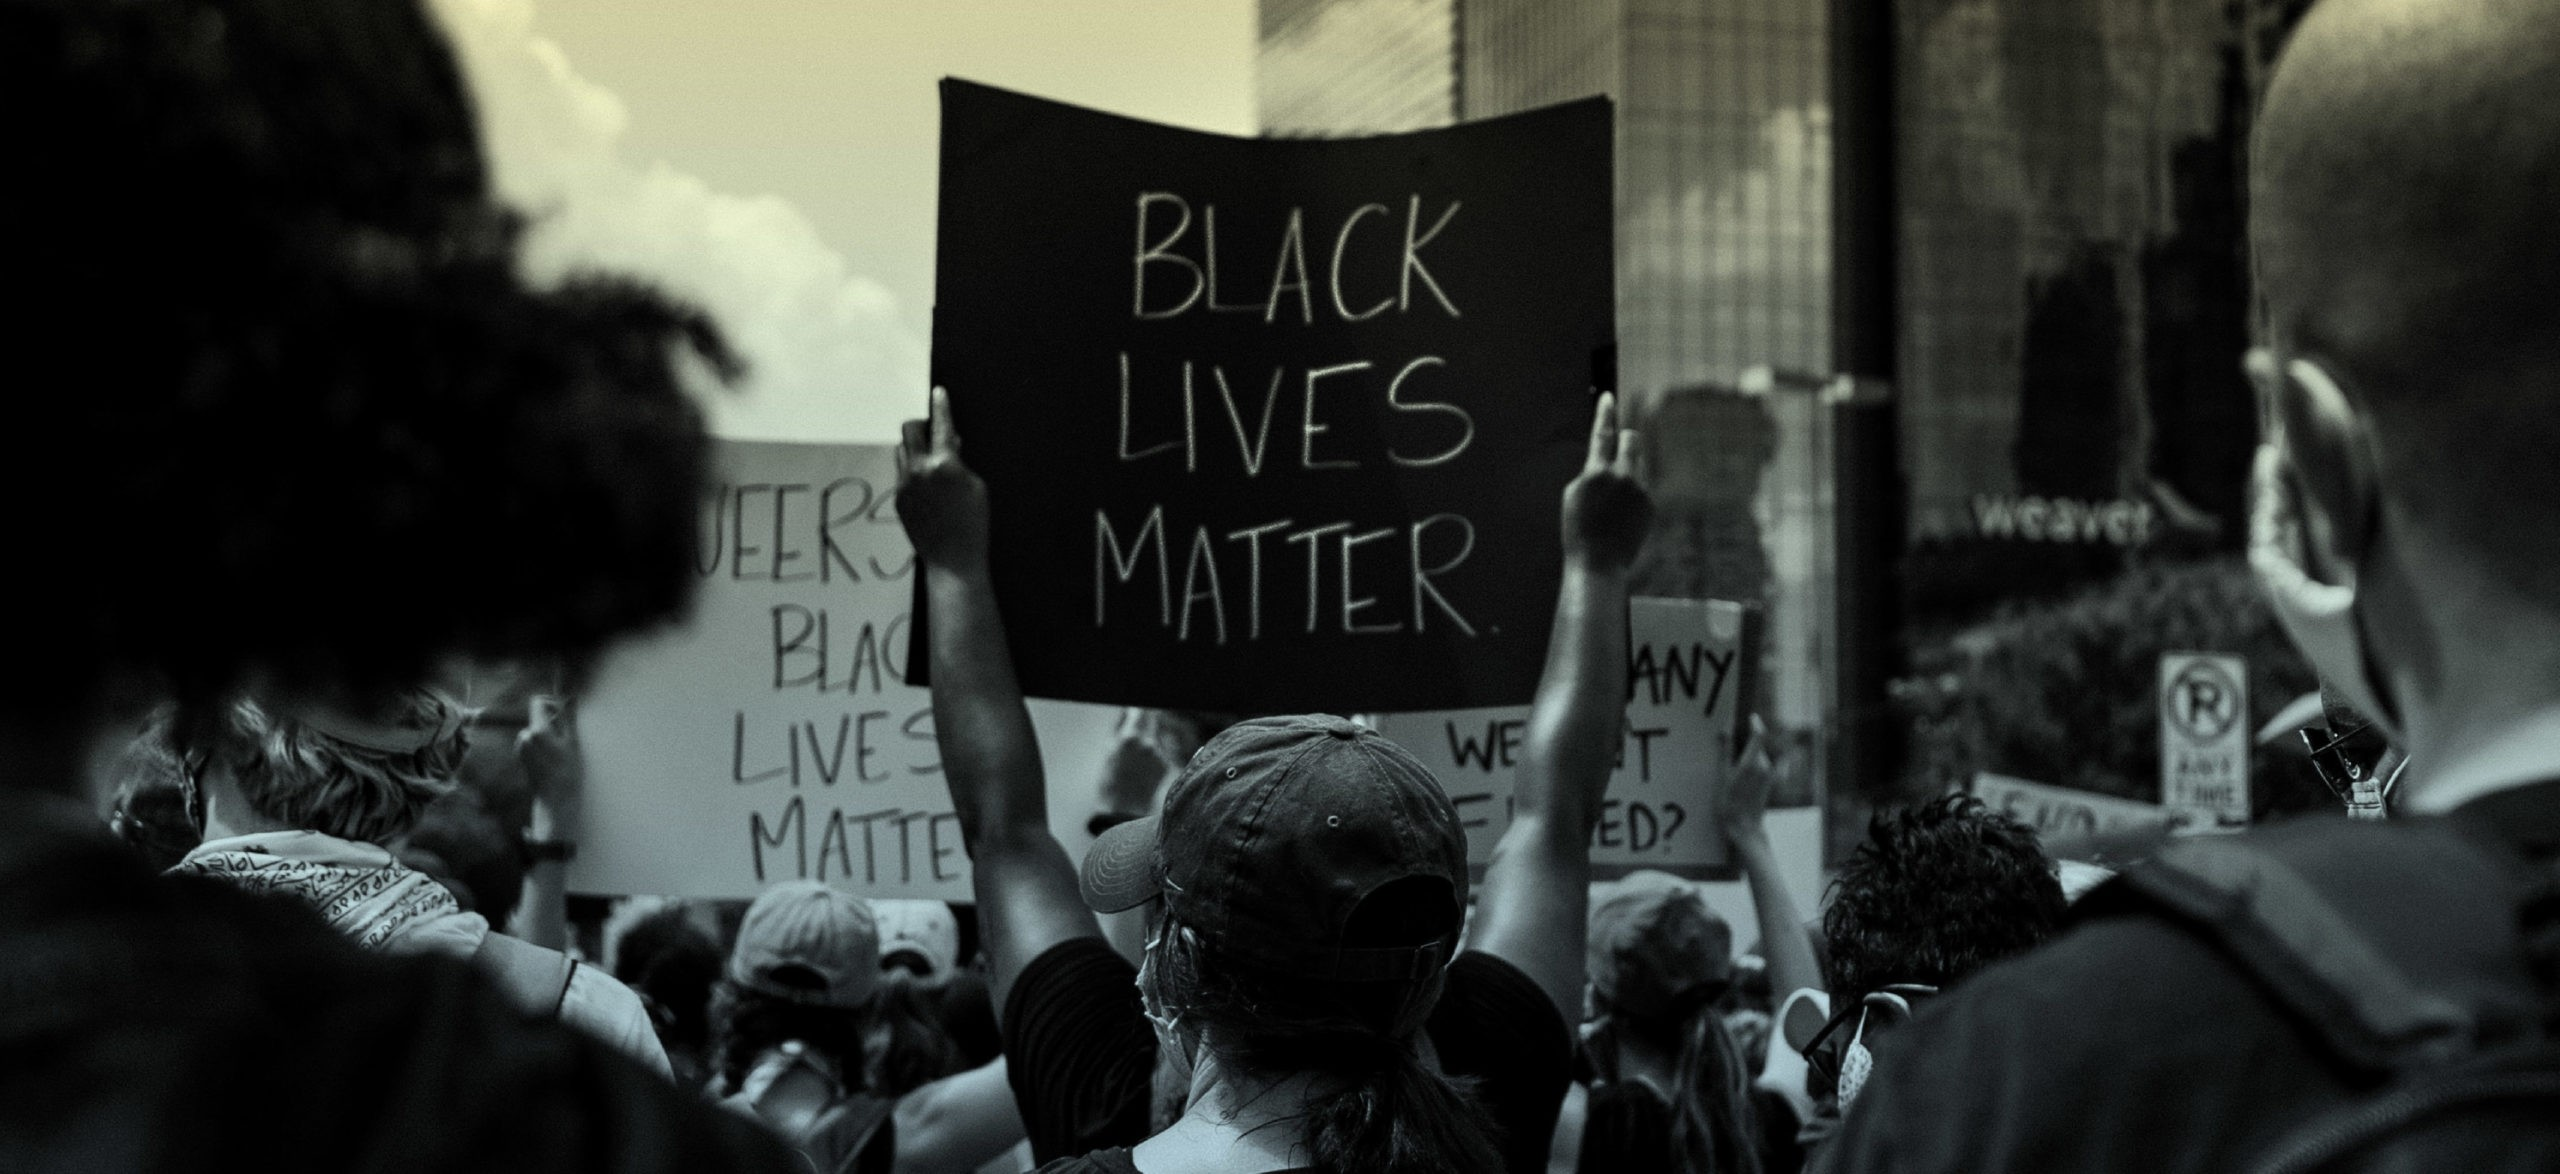 A group of people holds anti-racist signs at a Black Lives Matter protest